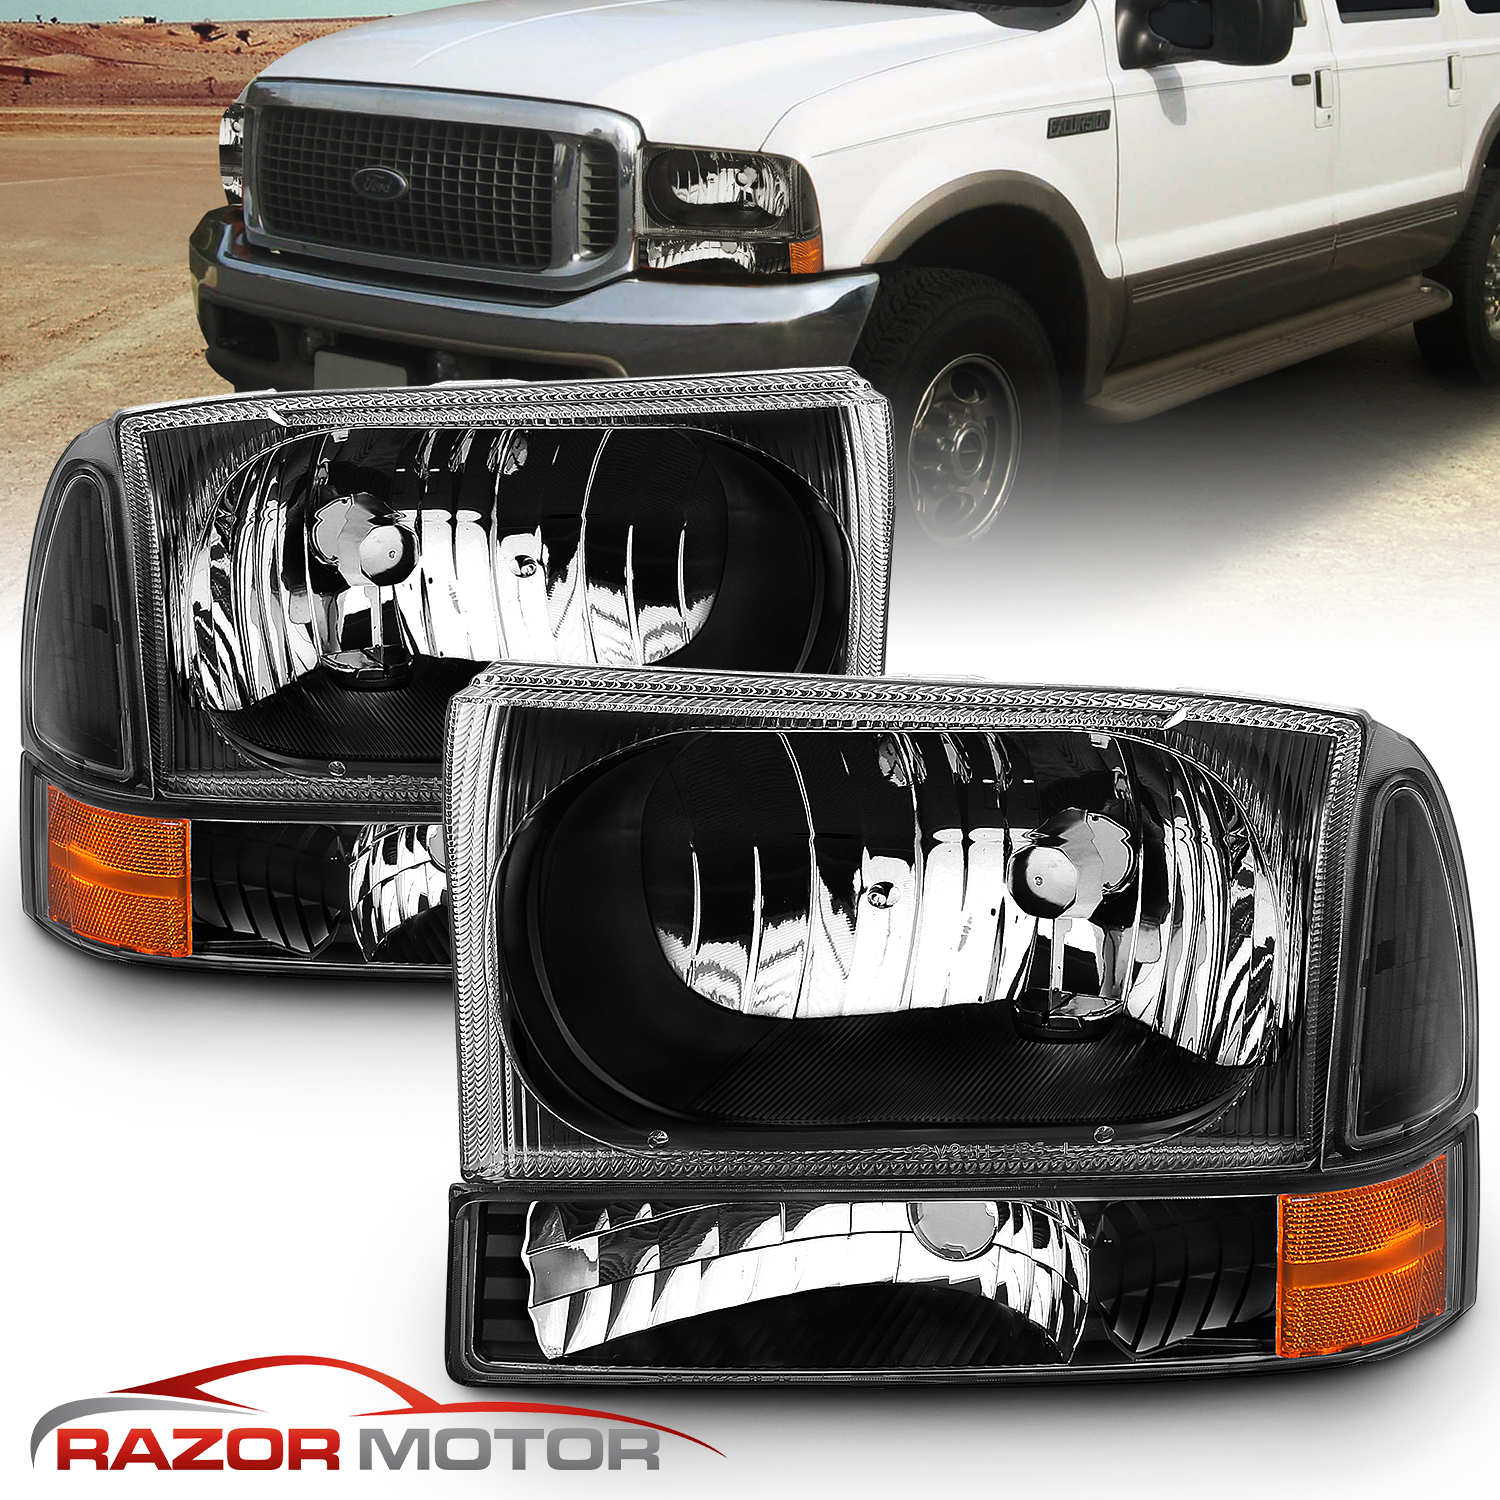 DAT AUTO PARTS Black Head LAMP Door for USE with Sealed Beams Replacement for 99-04 Ford F-Series Super Duty FO2512157 Left Driver Side